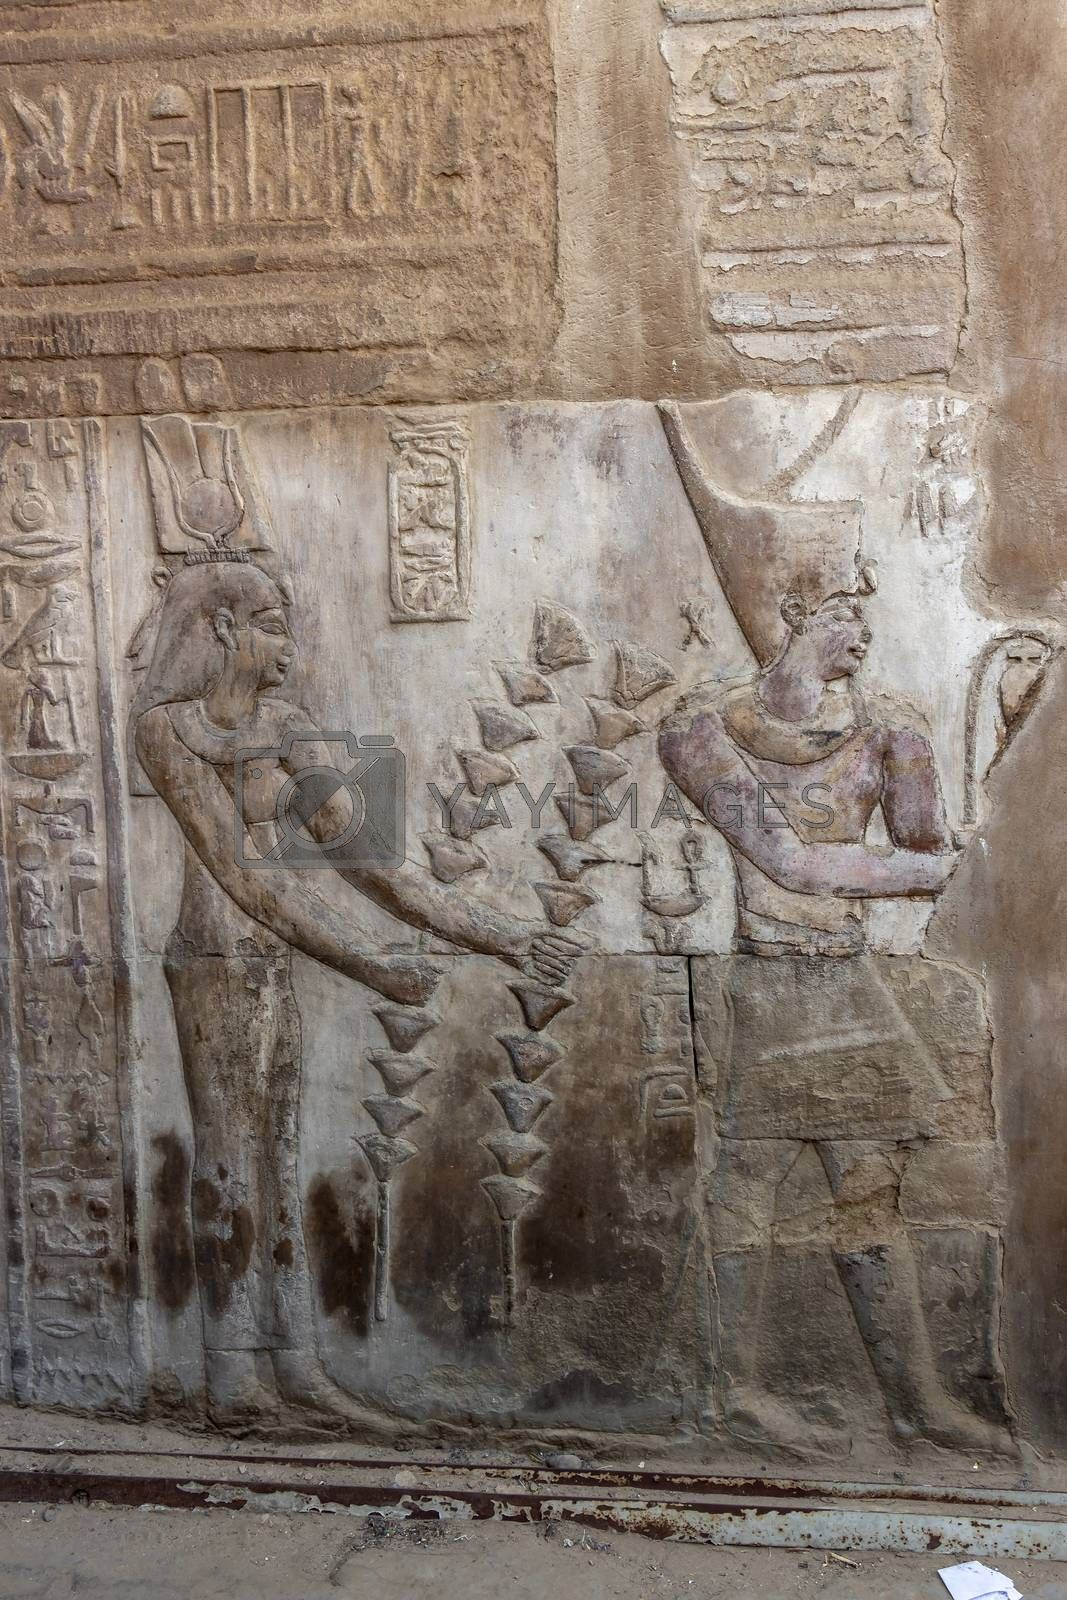 Detailed ancient Egyptian bas relief carvings in the Temple of Kom Ombo, Aswan